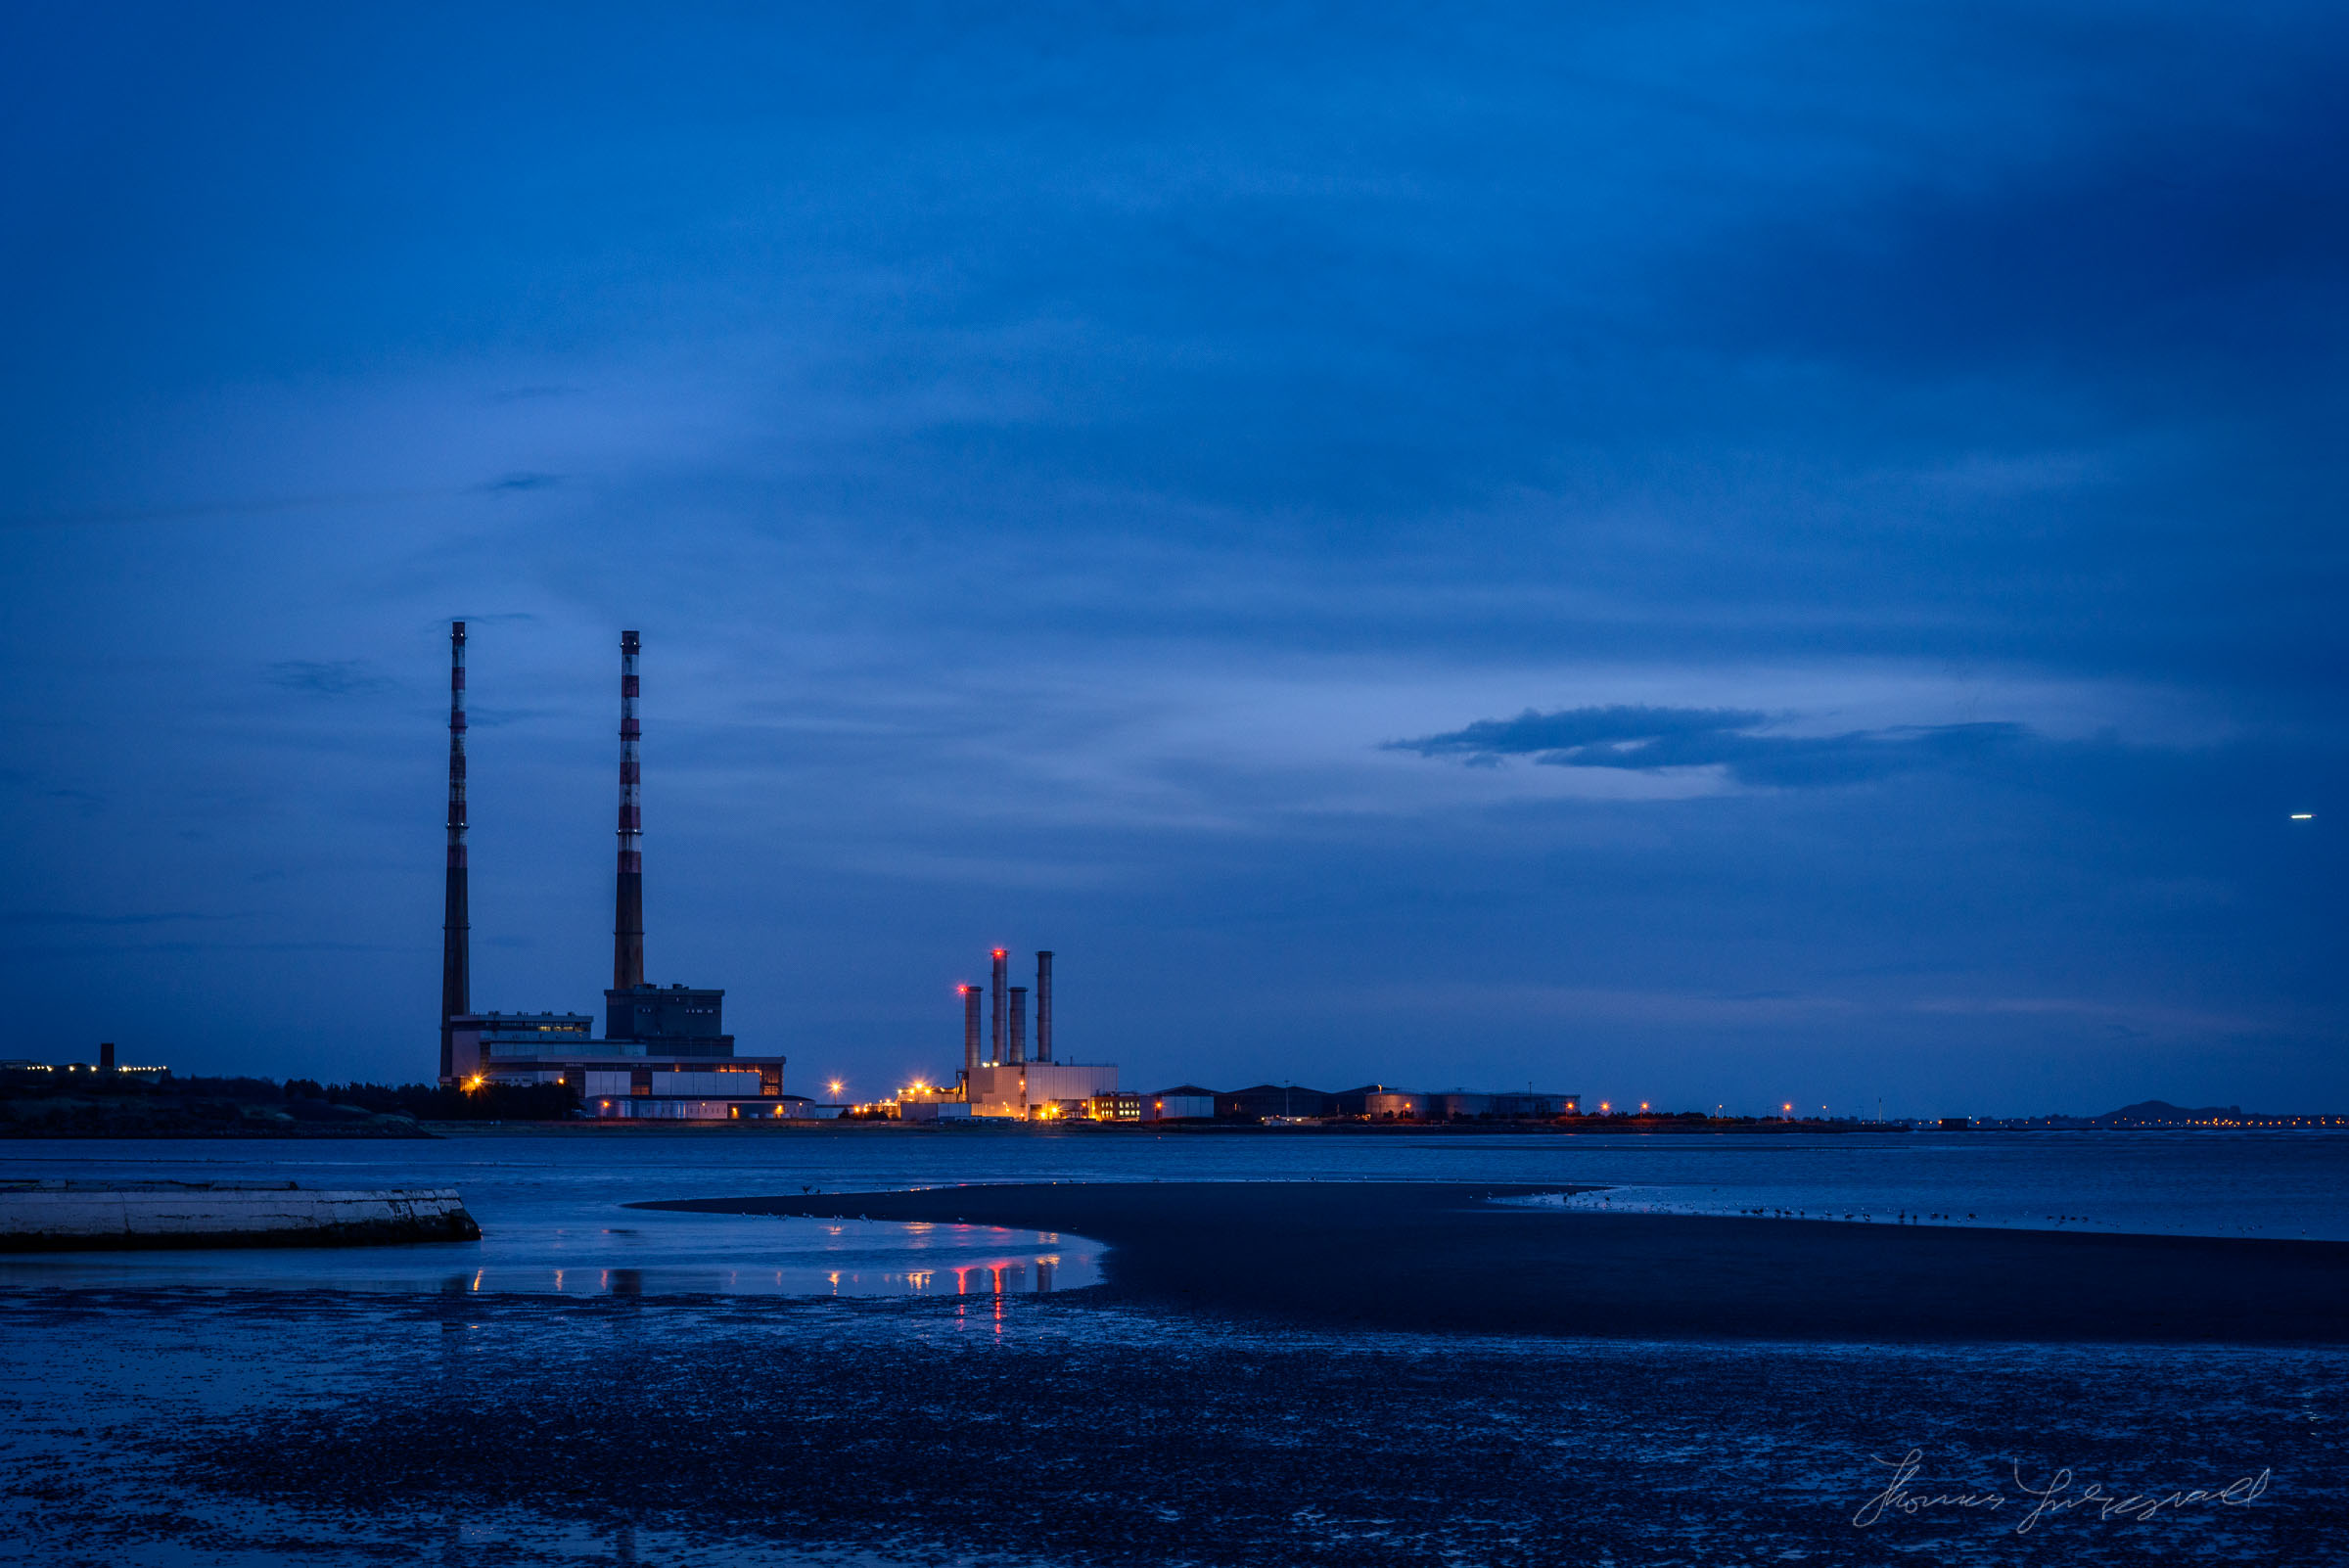 Before sunrise on the first day of 2018 in Dublin